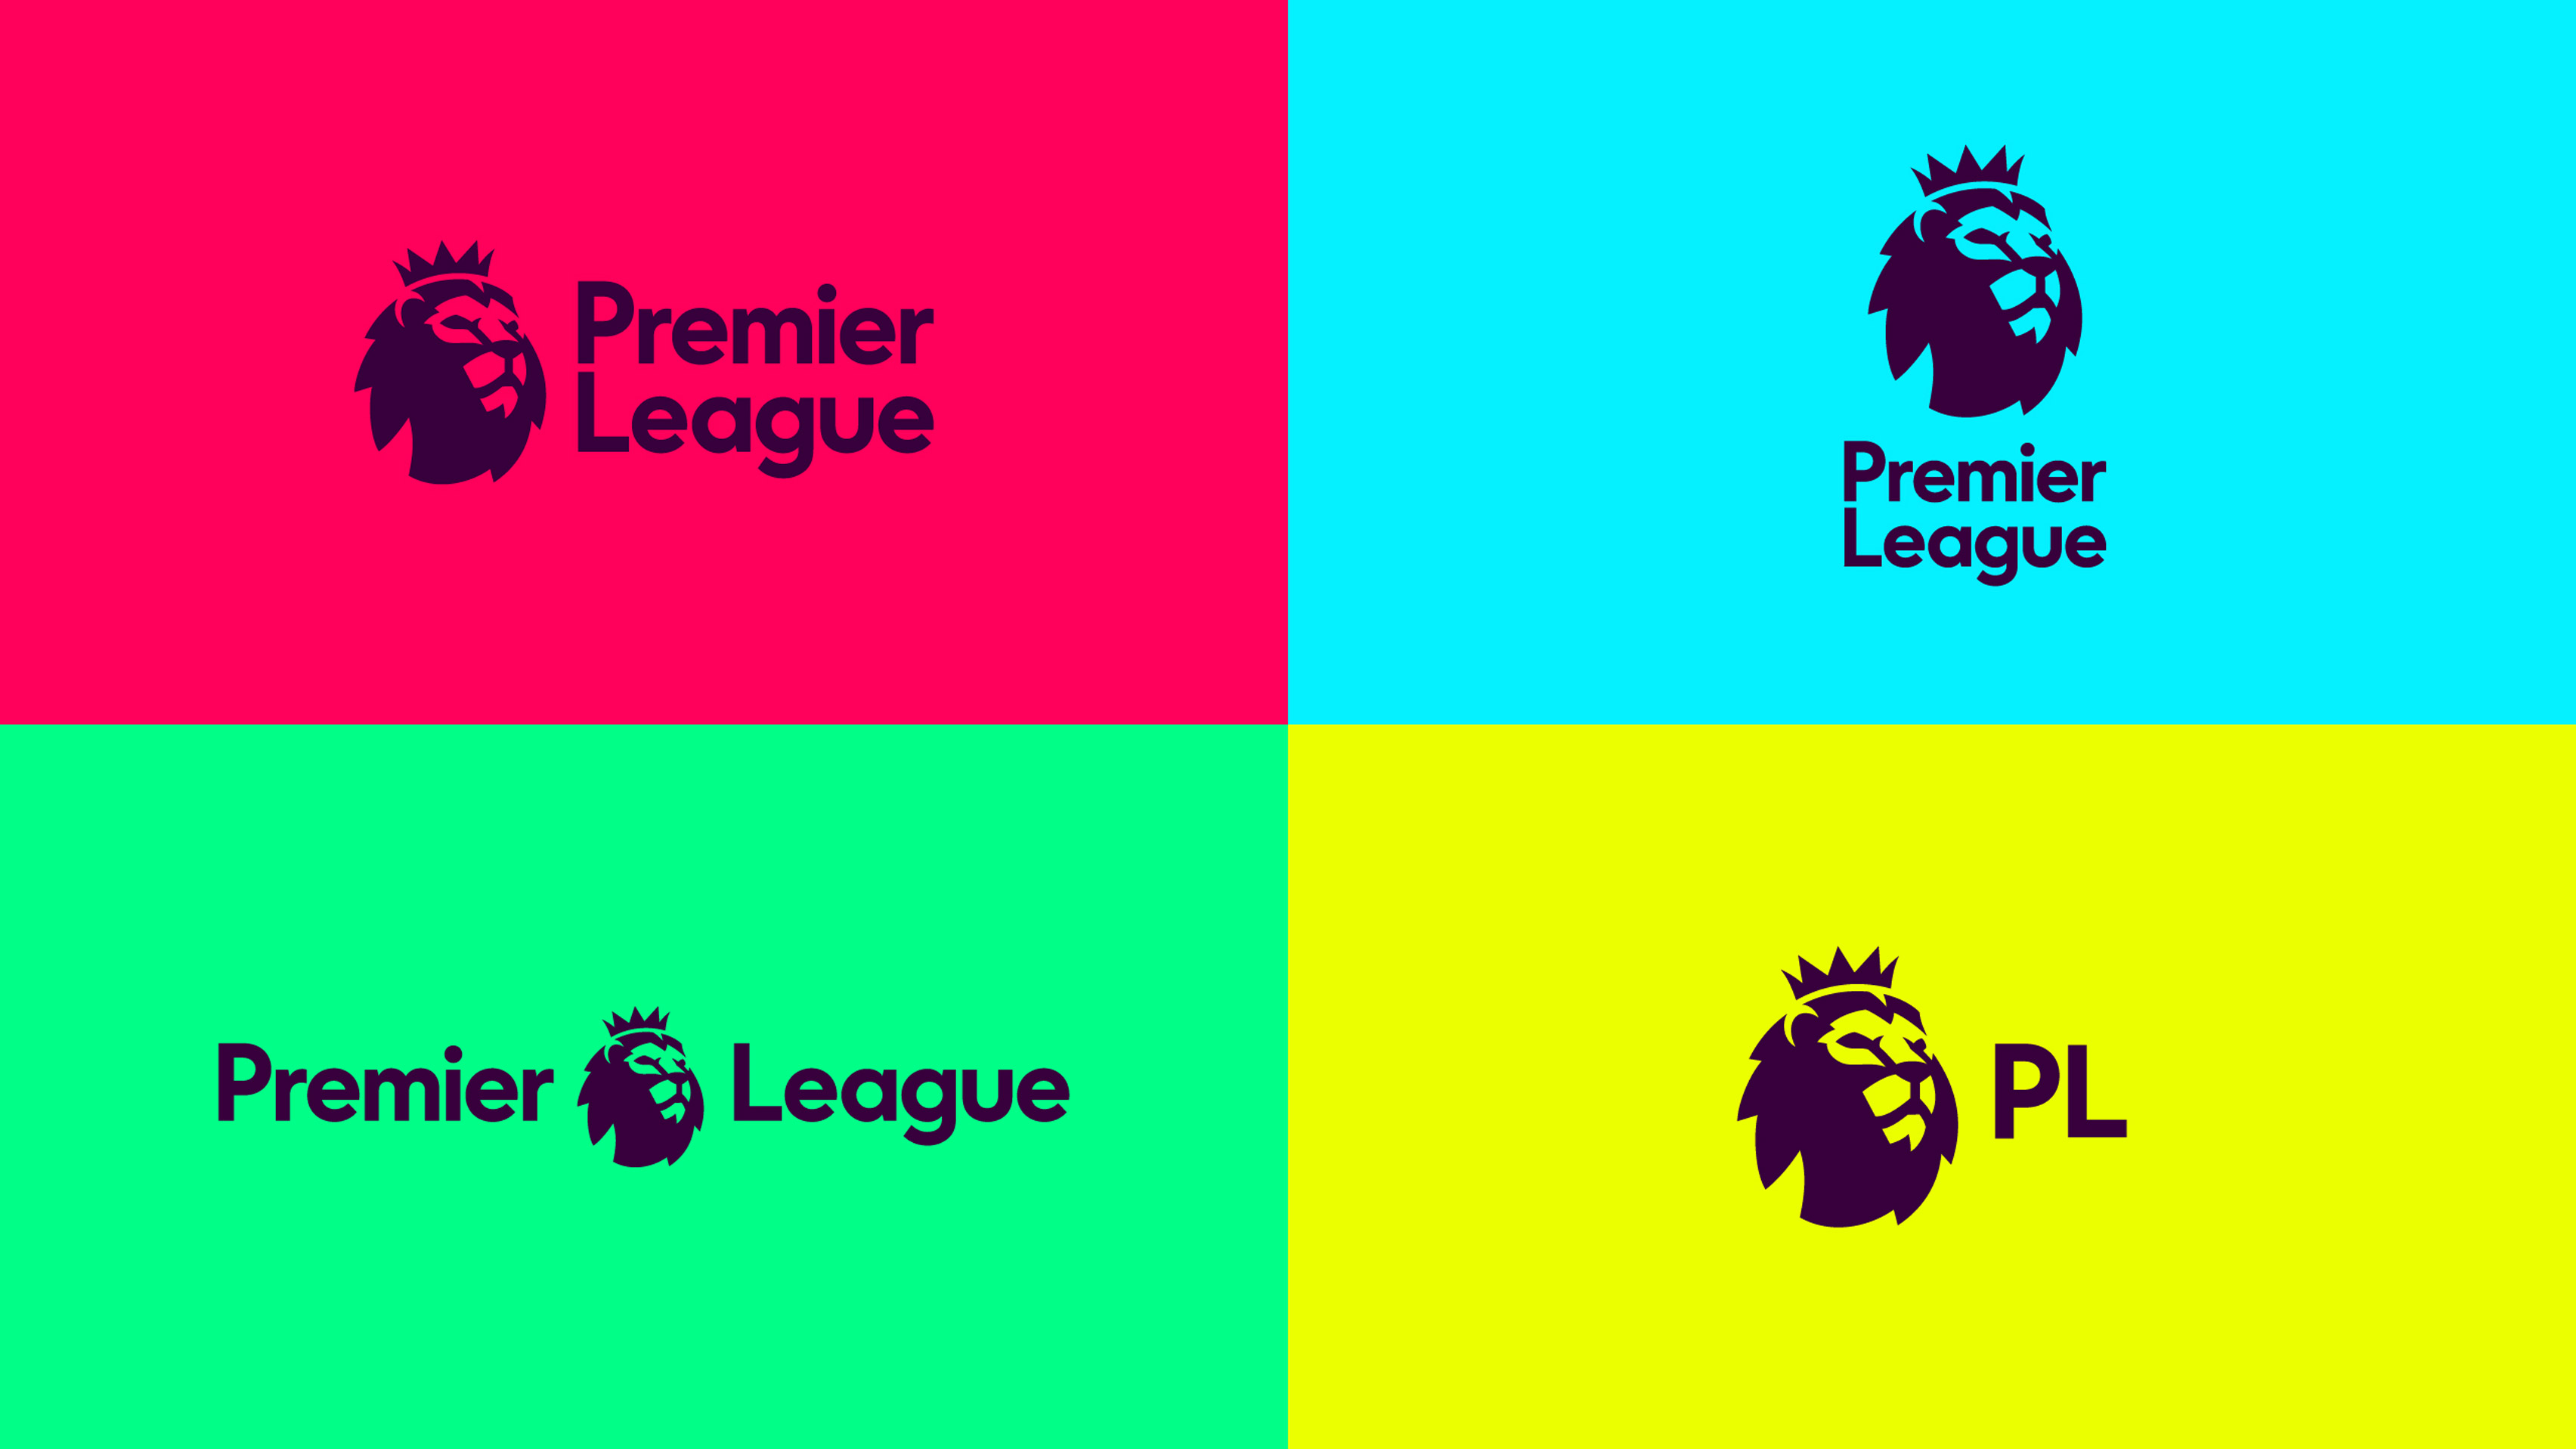 new premier league branding